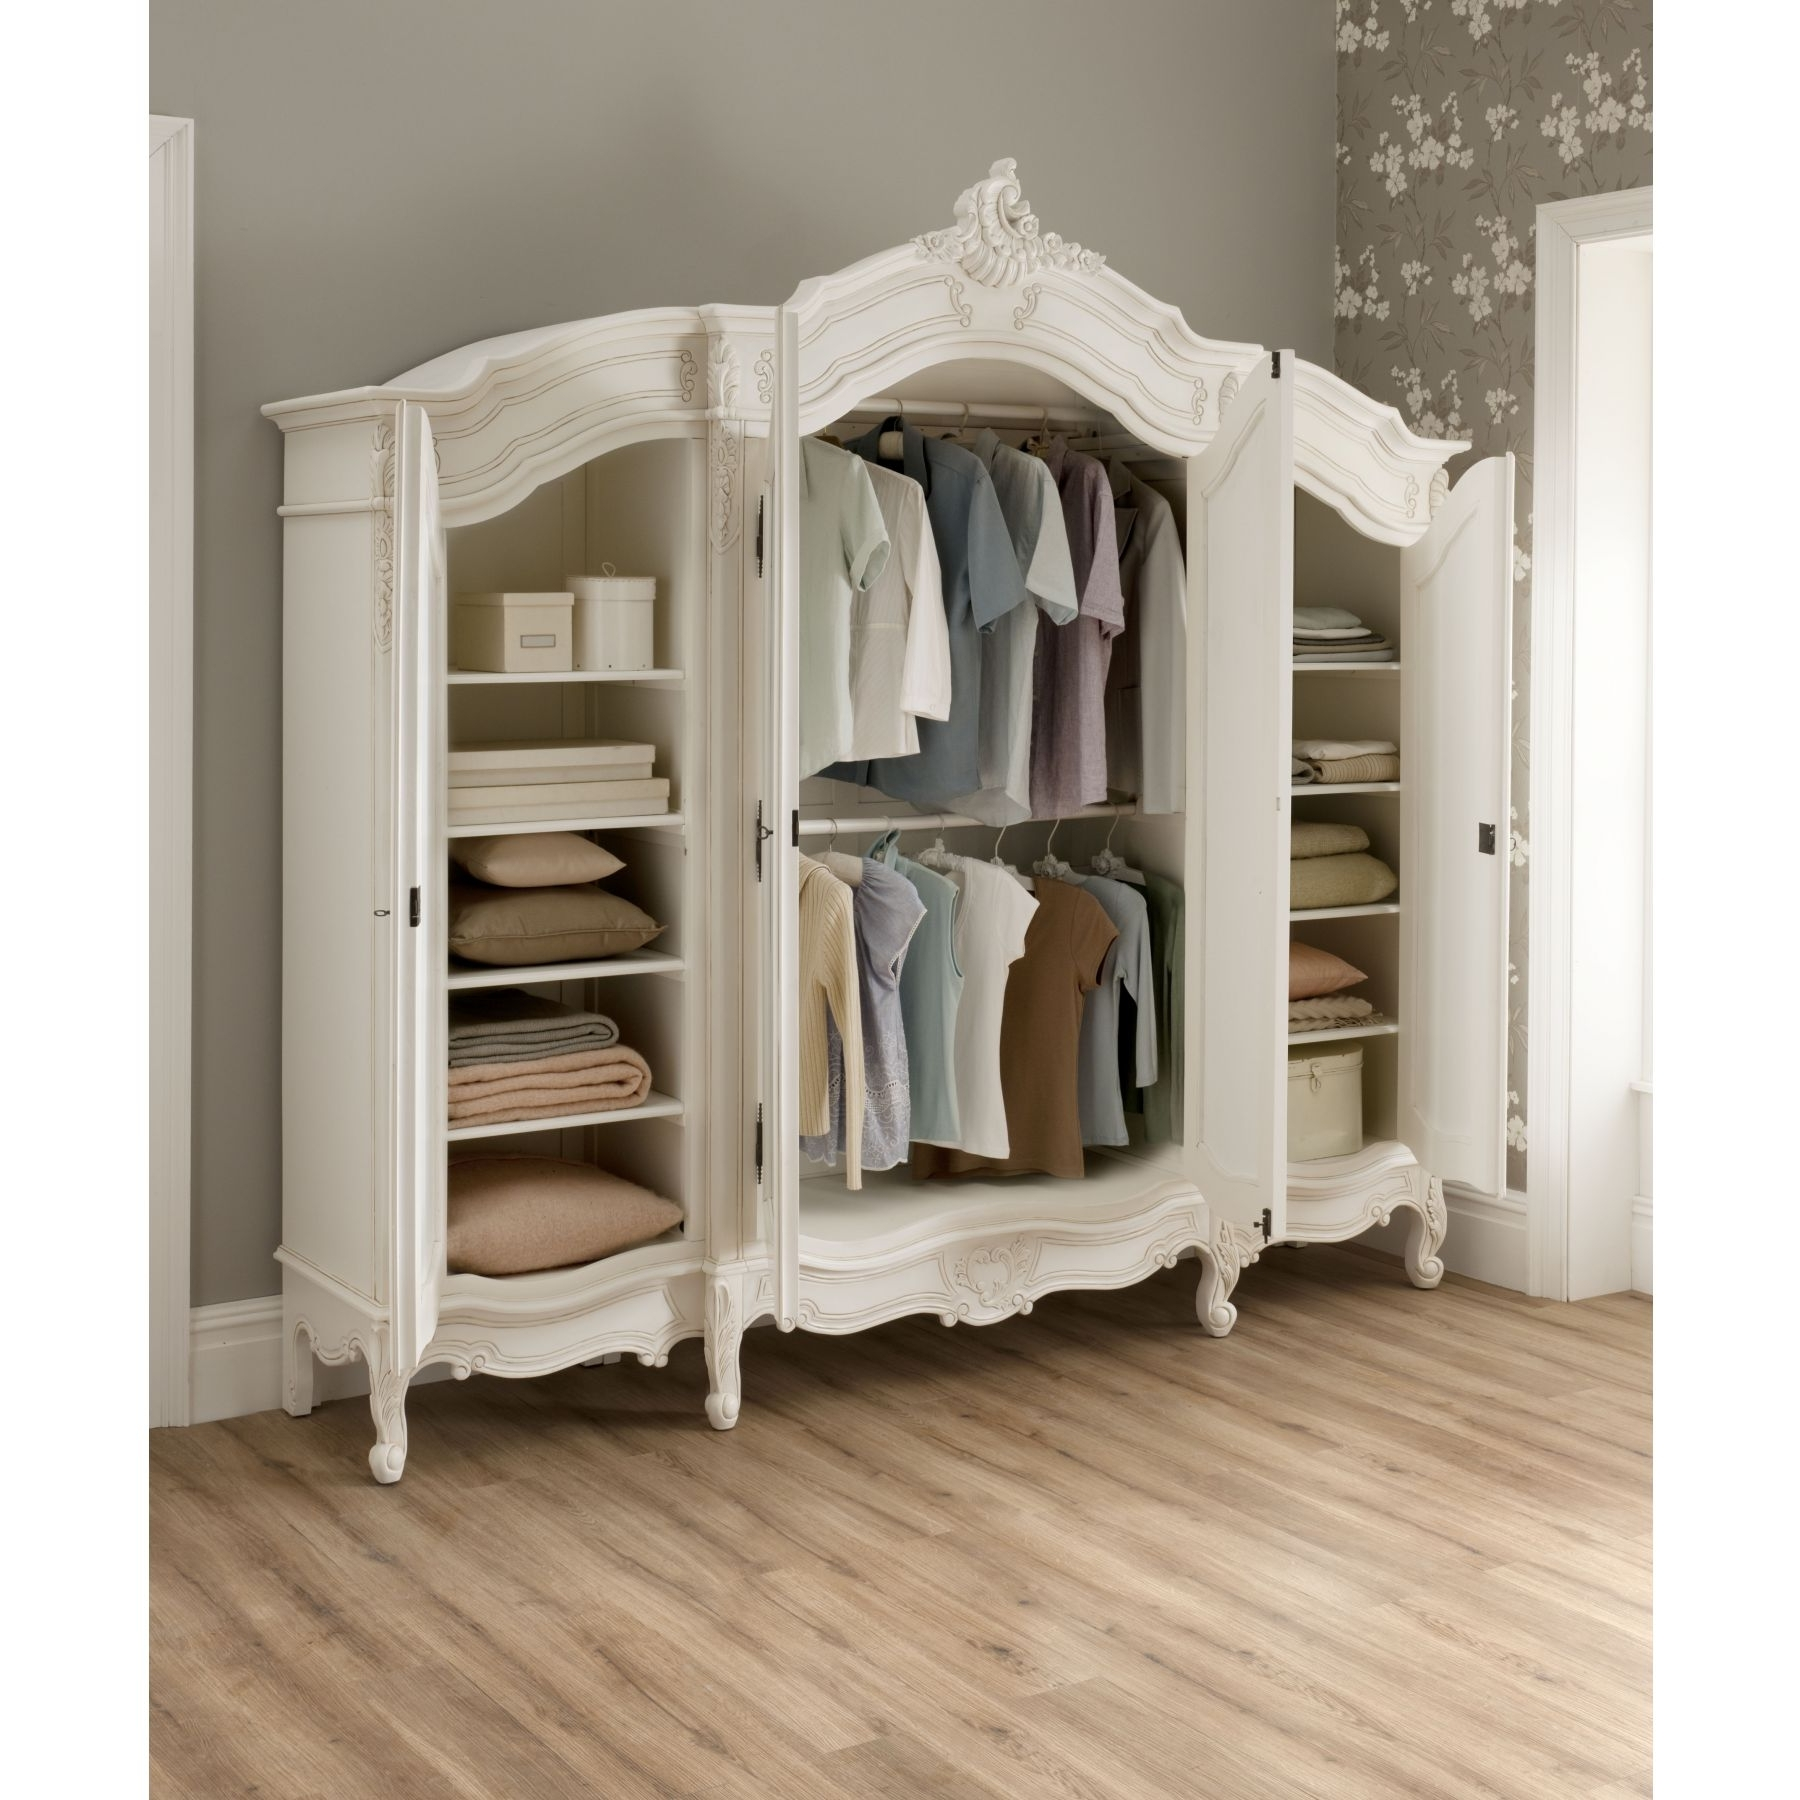 White French Armoire Wardrobes For Favorite French Wardrobe For Simple Outfits – Bellissimainteriors (View 12 of 15)